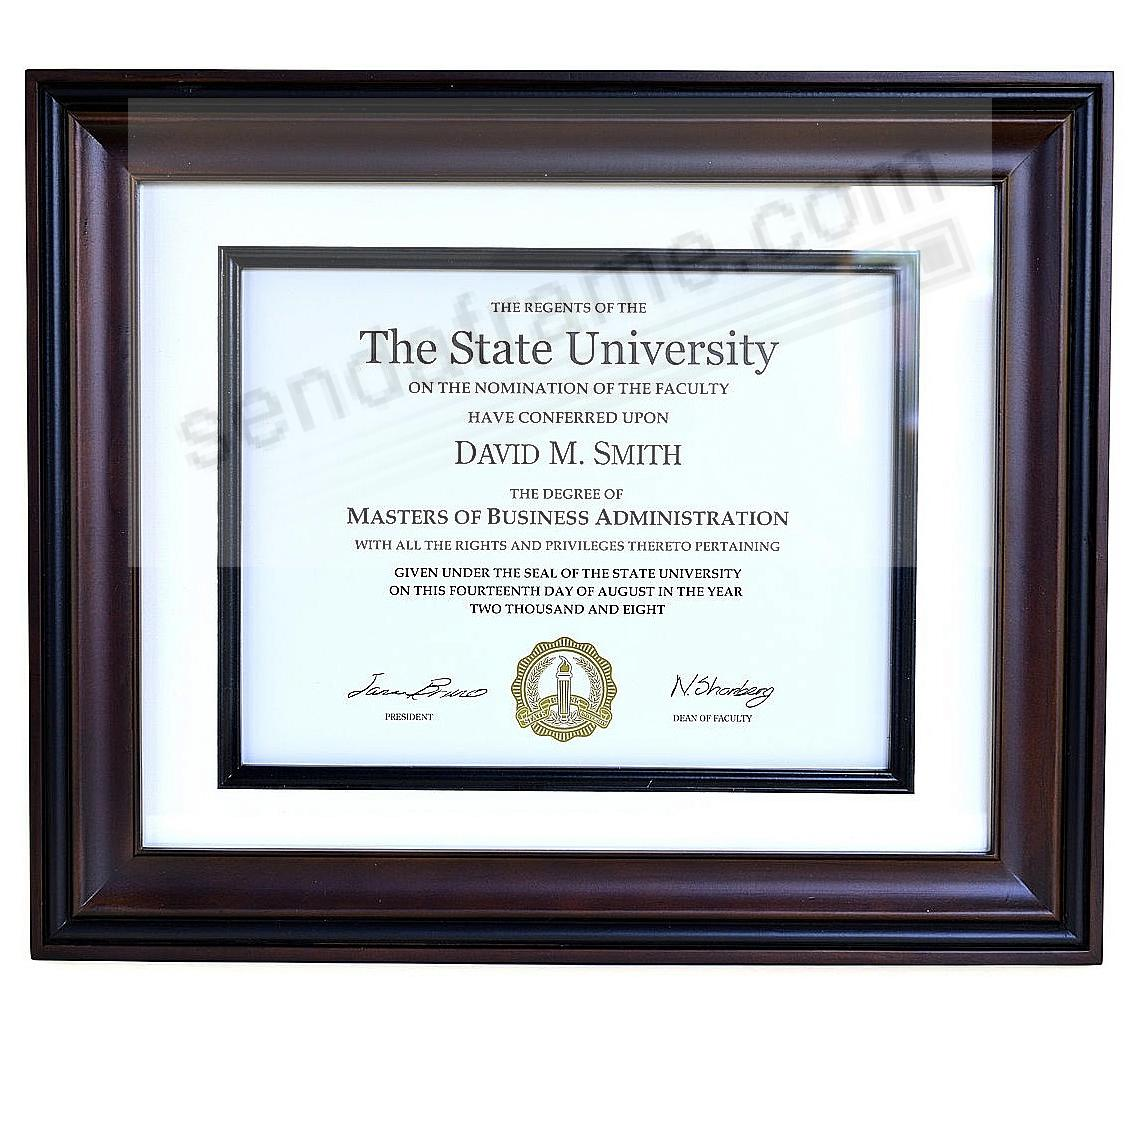 Two-Tone RECOGNITION Wood/matted certificate frame 14x11 / 11x8½ from ARTCARE® by Nielsen®